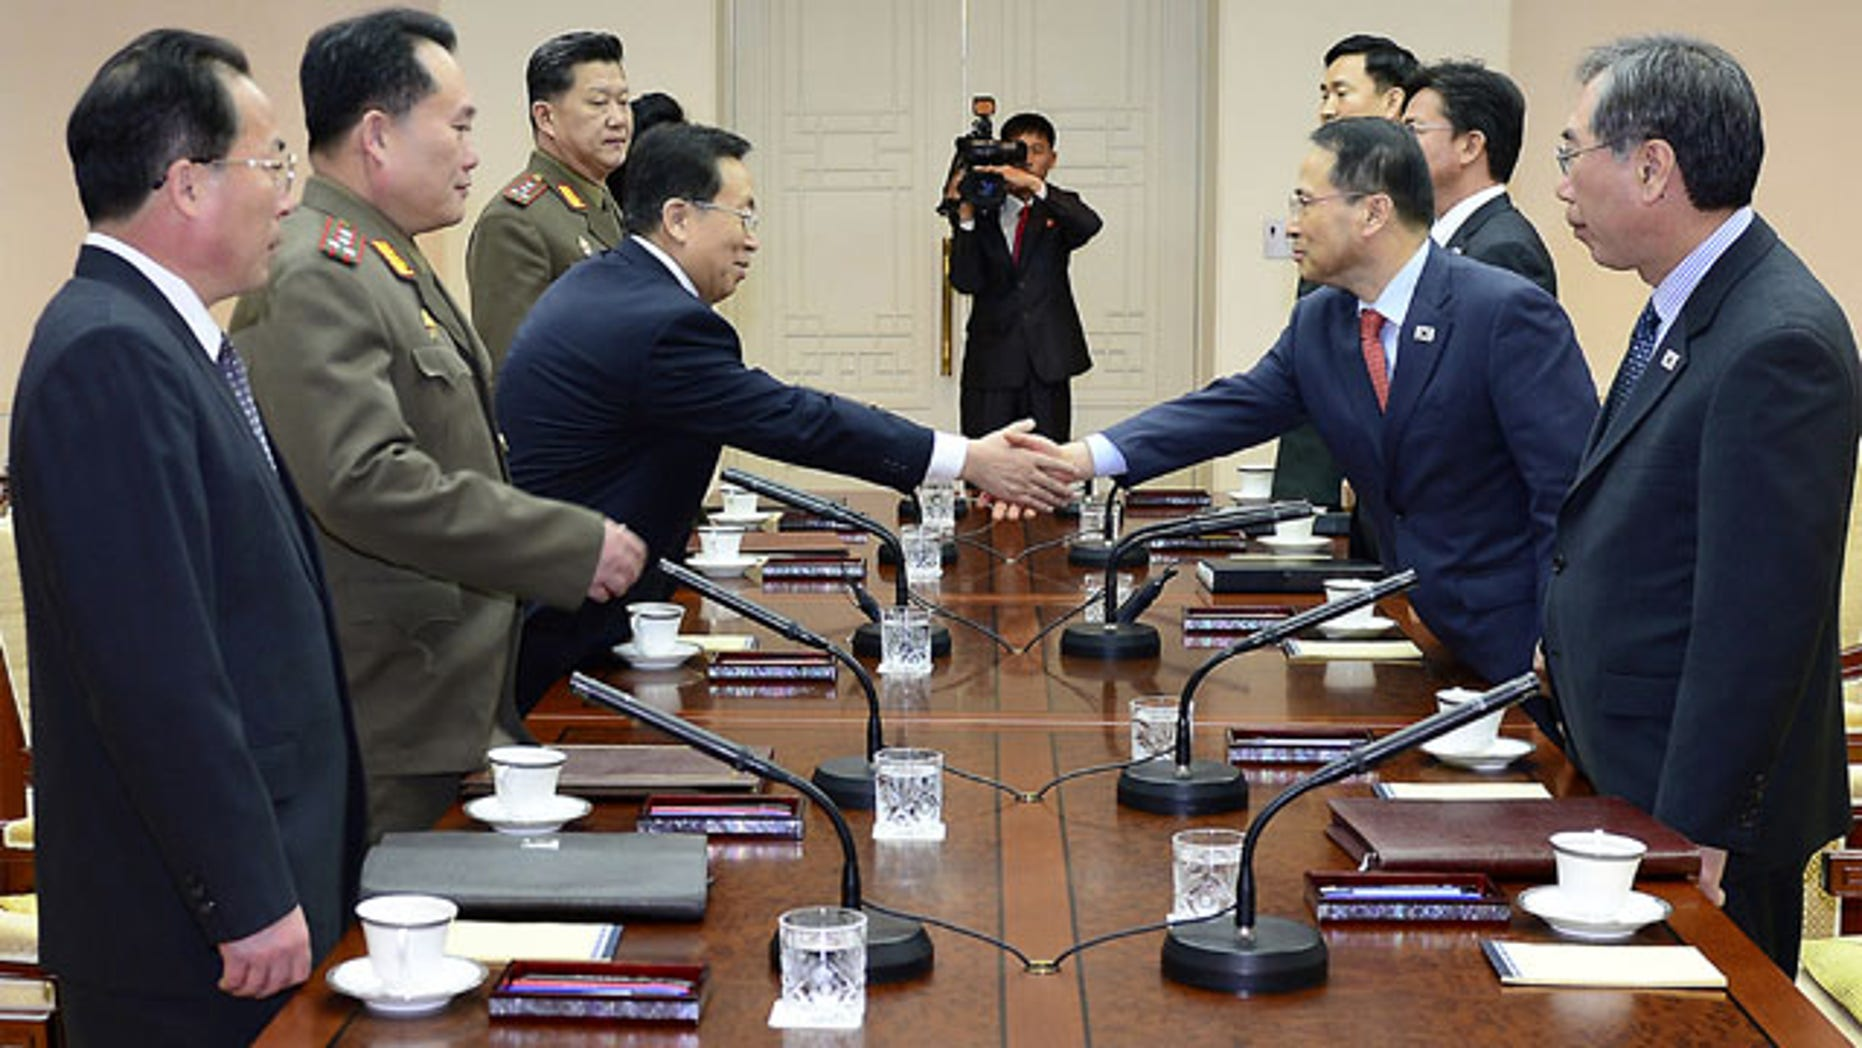 February 12, 2014: In this photo released by the South Korean Unification Ministry, South Korean chief delegate Kim Kyou-hyun, second from right, shakes hands with his North Korean counterpart Won Tong Yon, third from left, during their meeting at the border village of Panumjom, South Korea. (AP Photo/South Korean Unification Ministry)